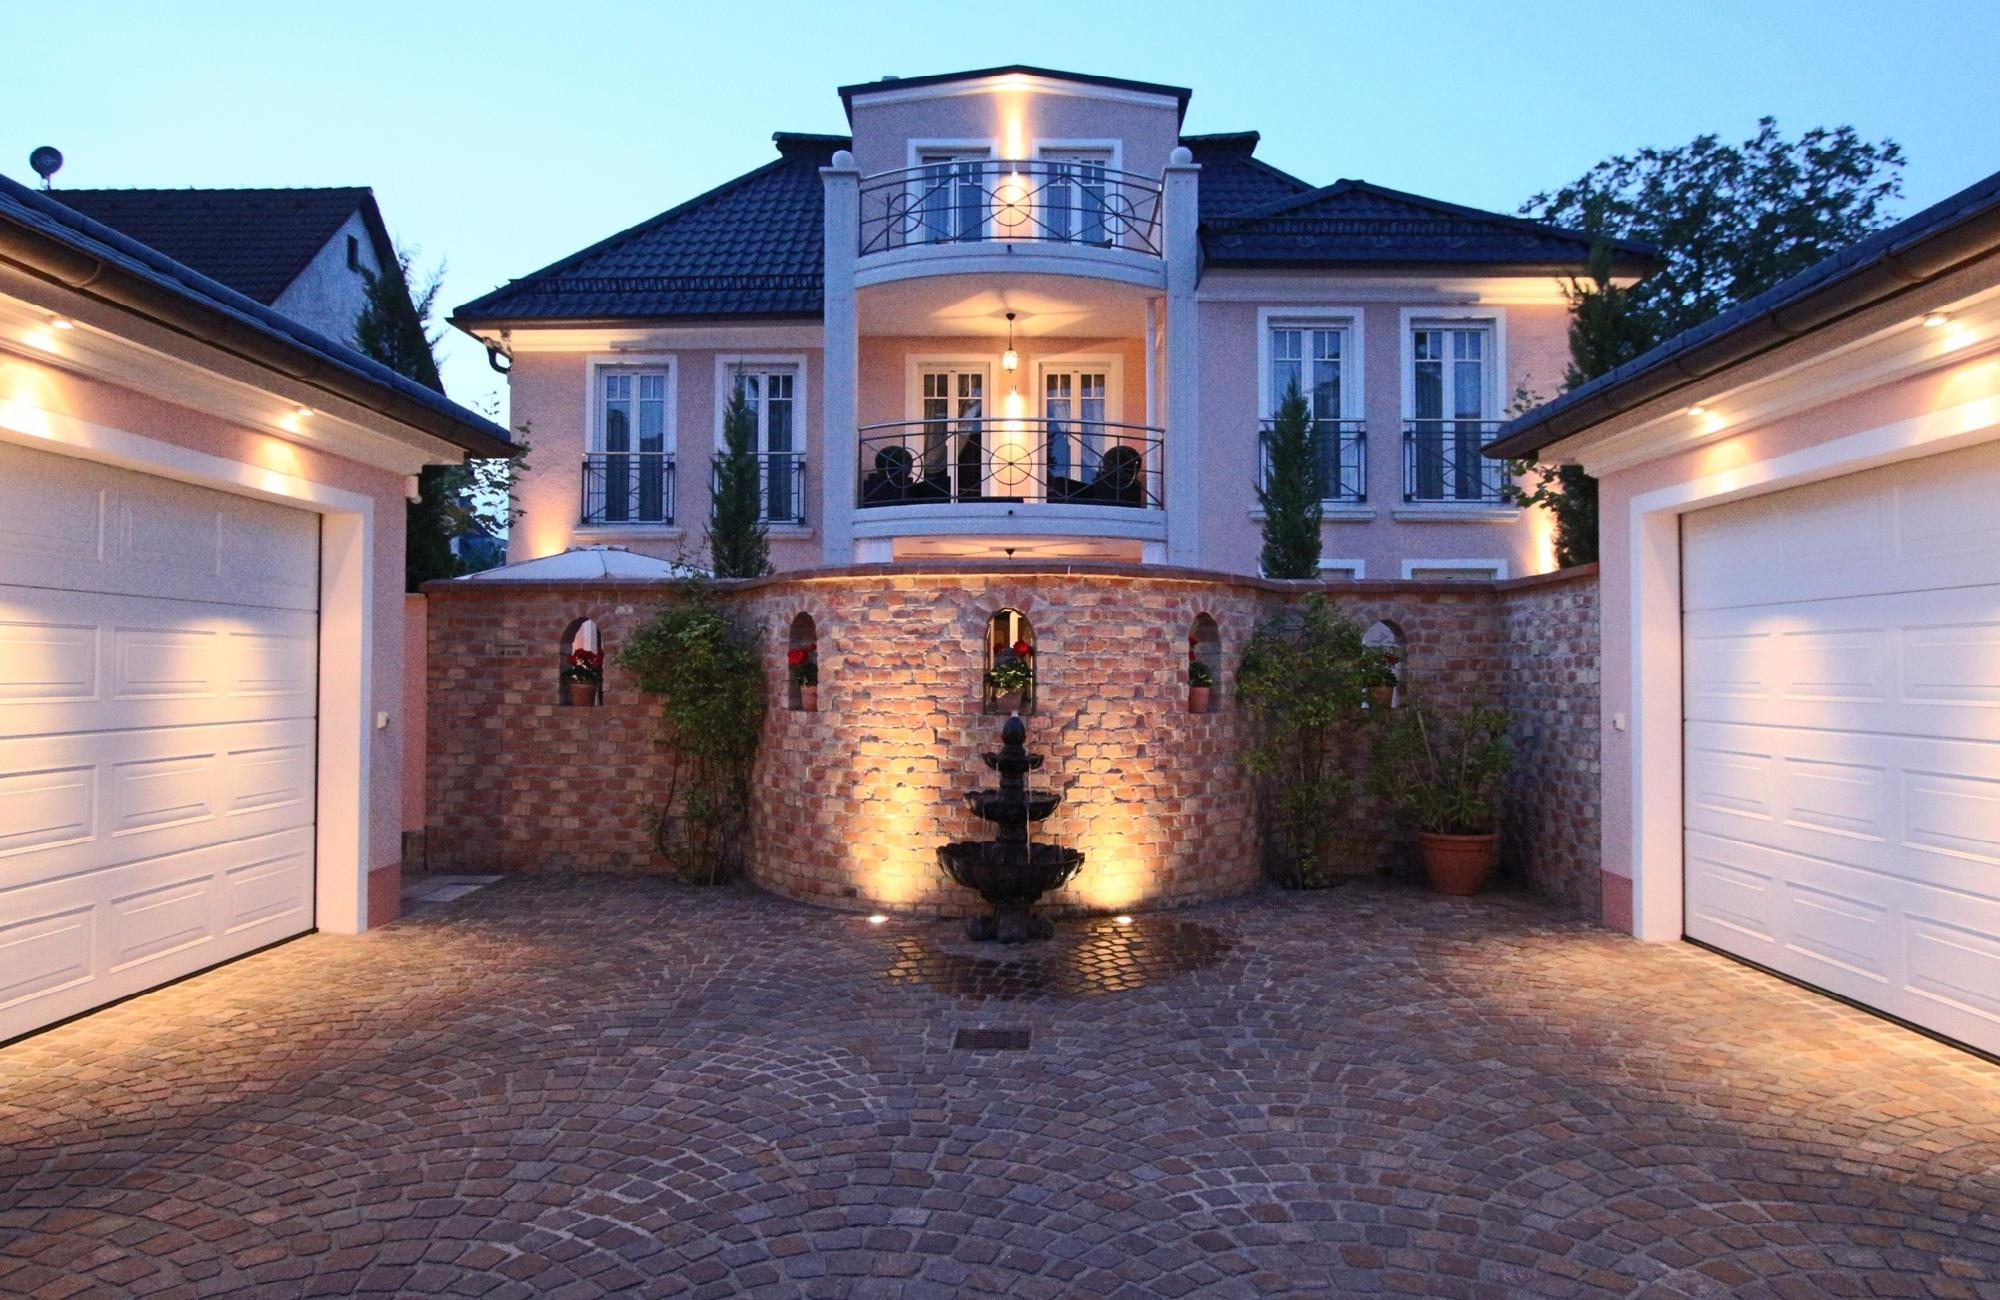 Exclusive villa in the Westpark of Munich